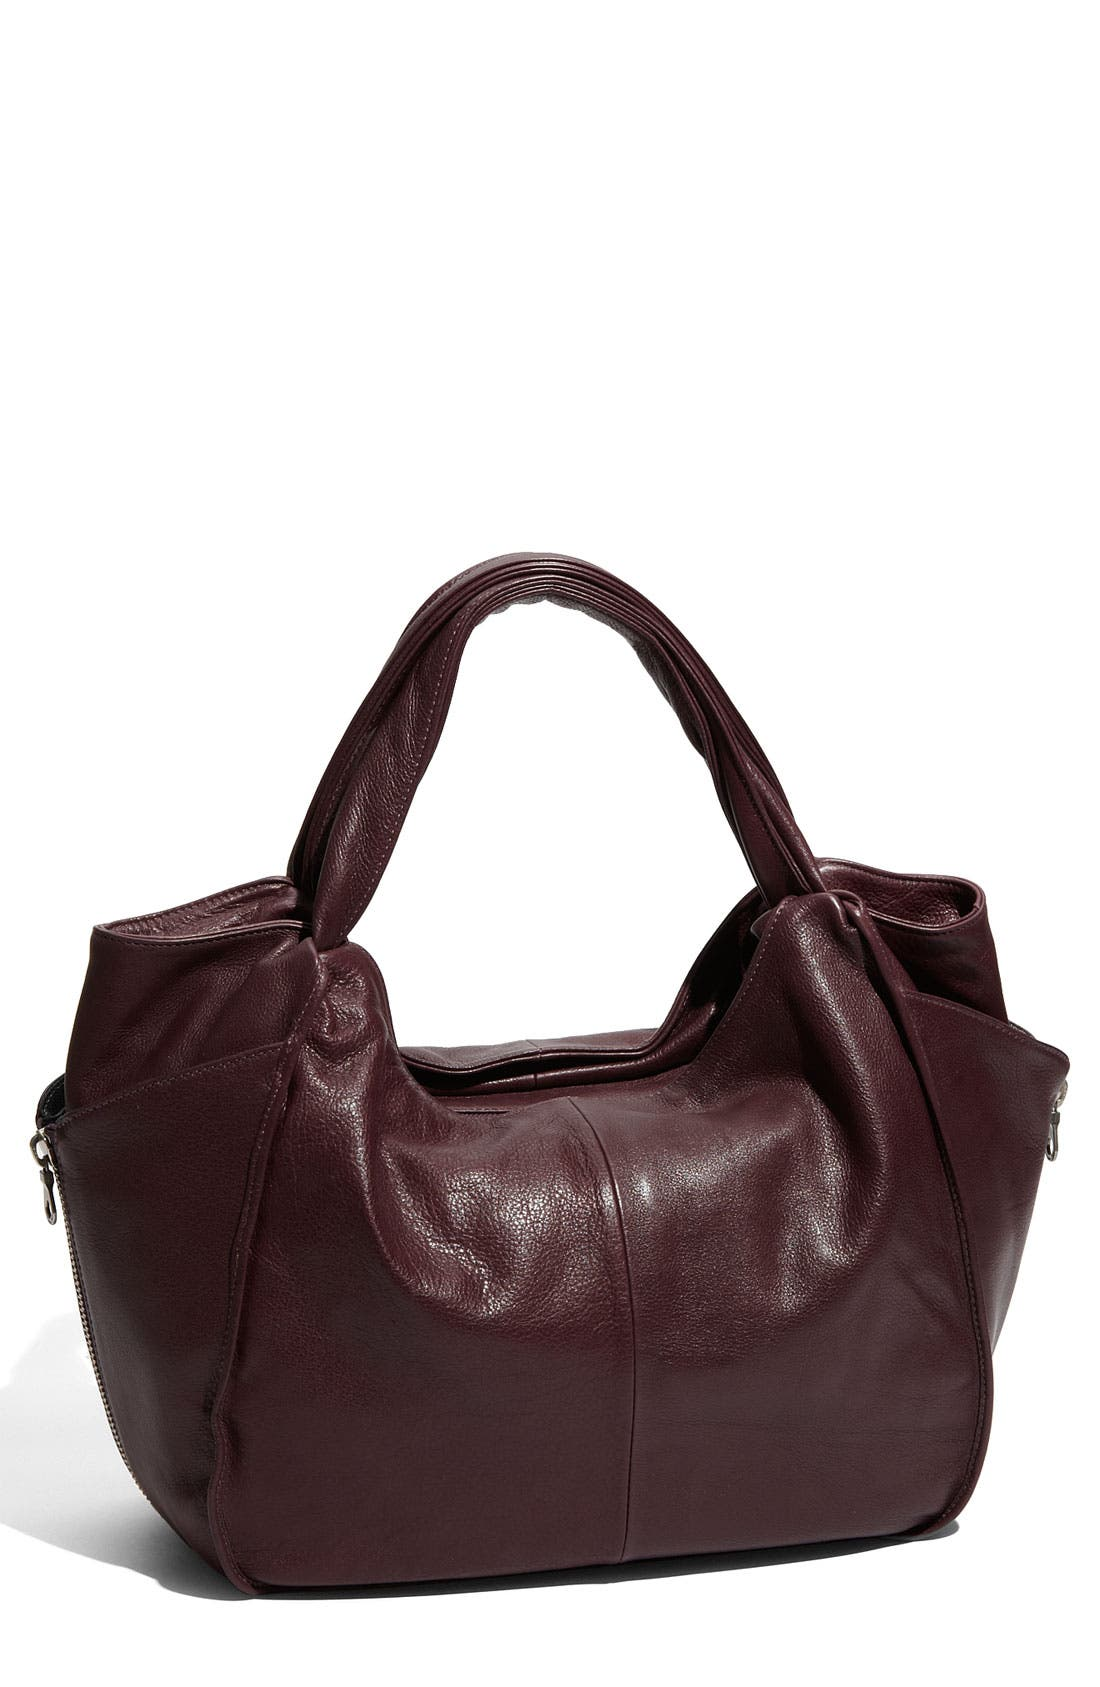 Alternate Image 1 Selected - Christopher Kon 'Sereena' Leather Tote